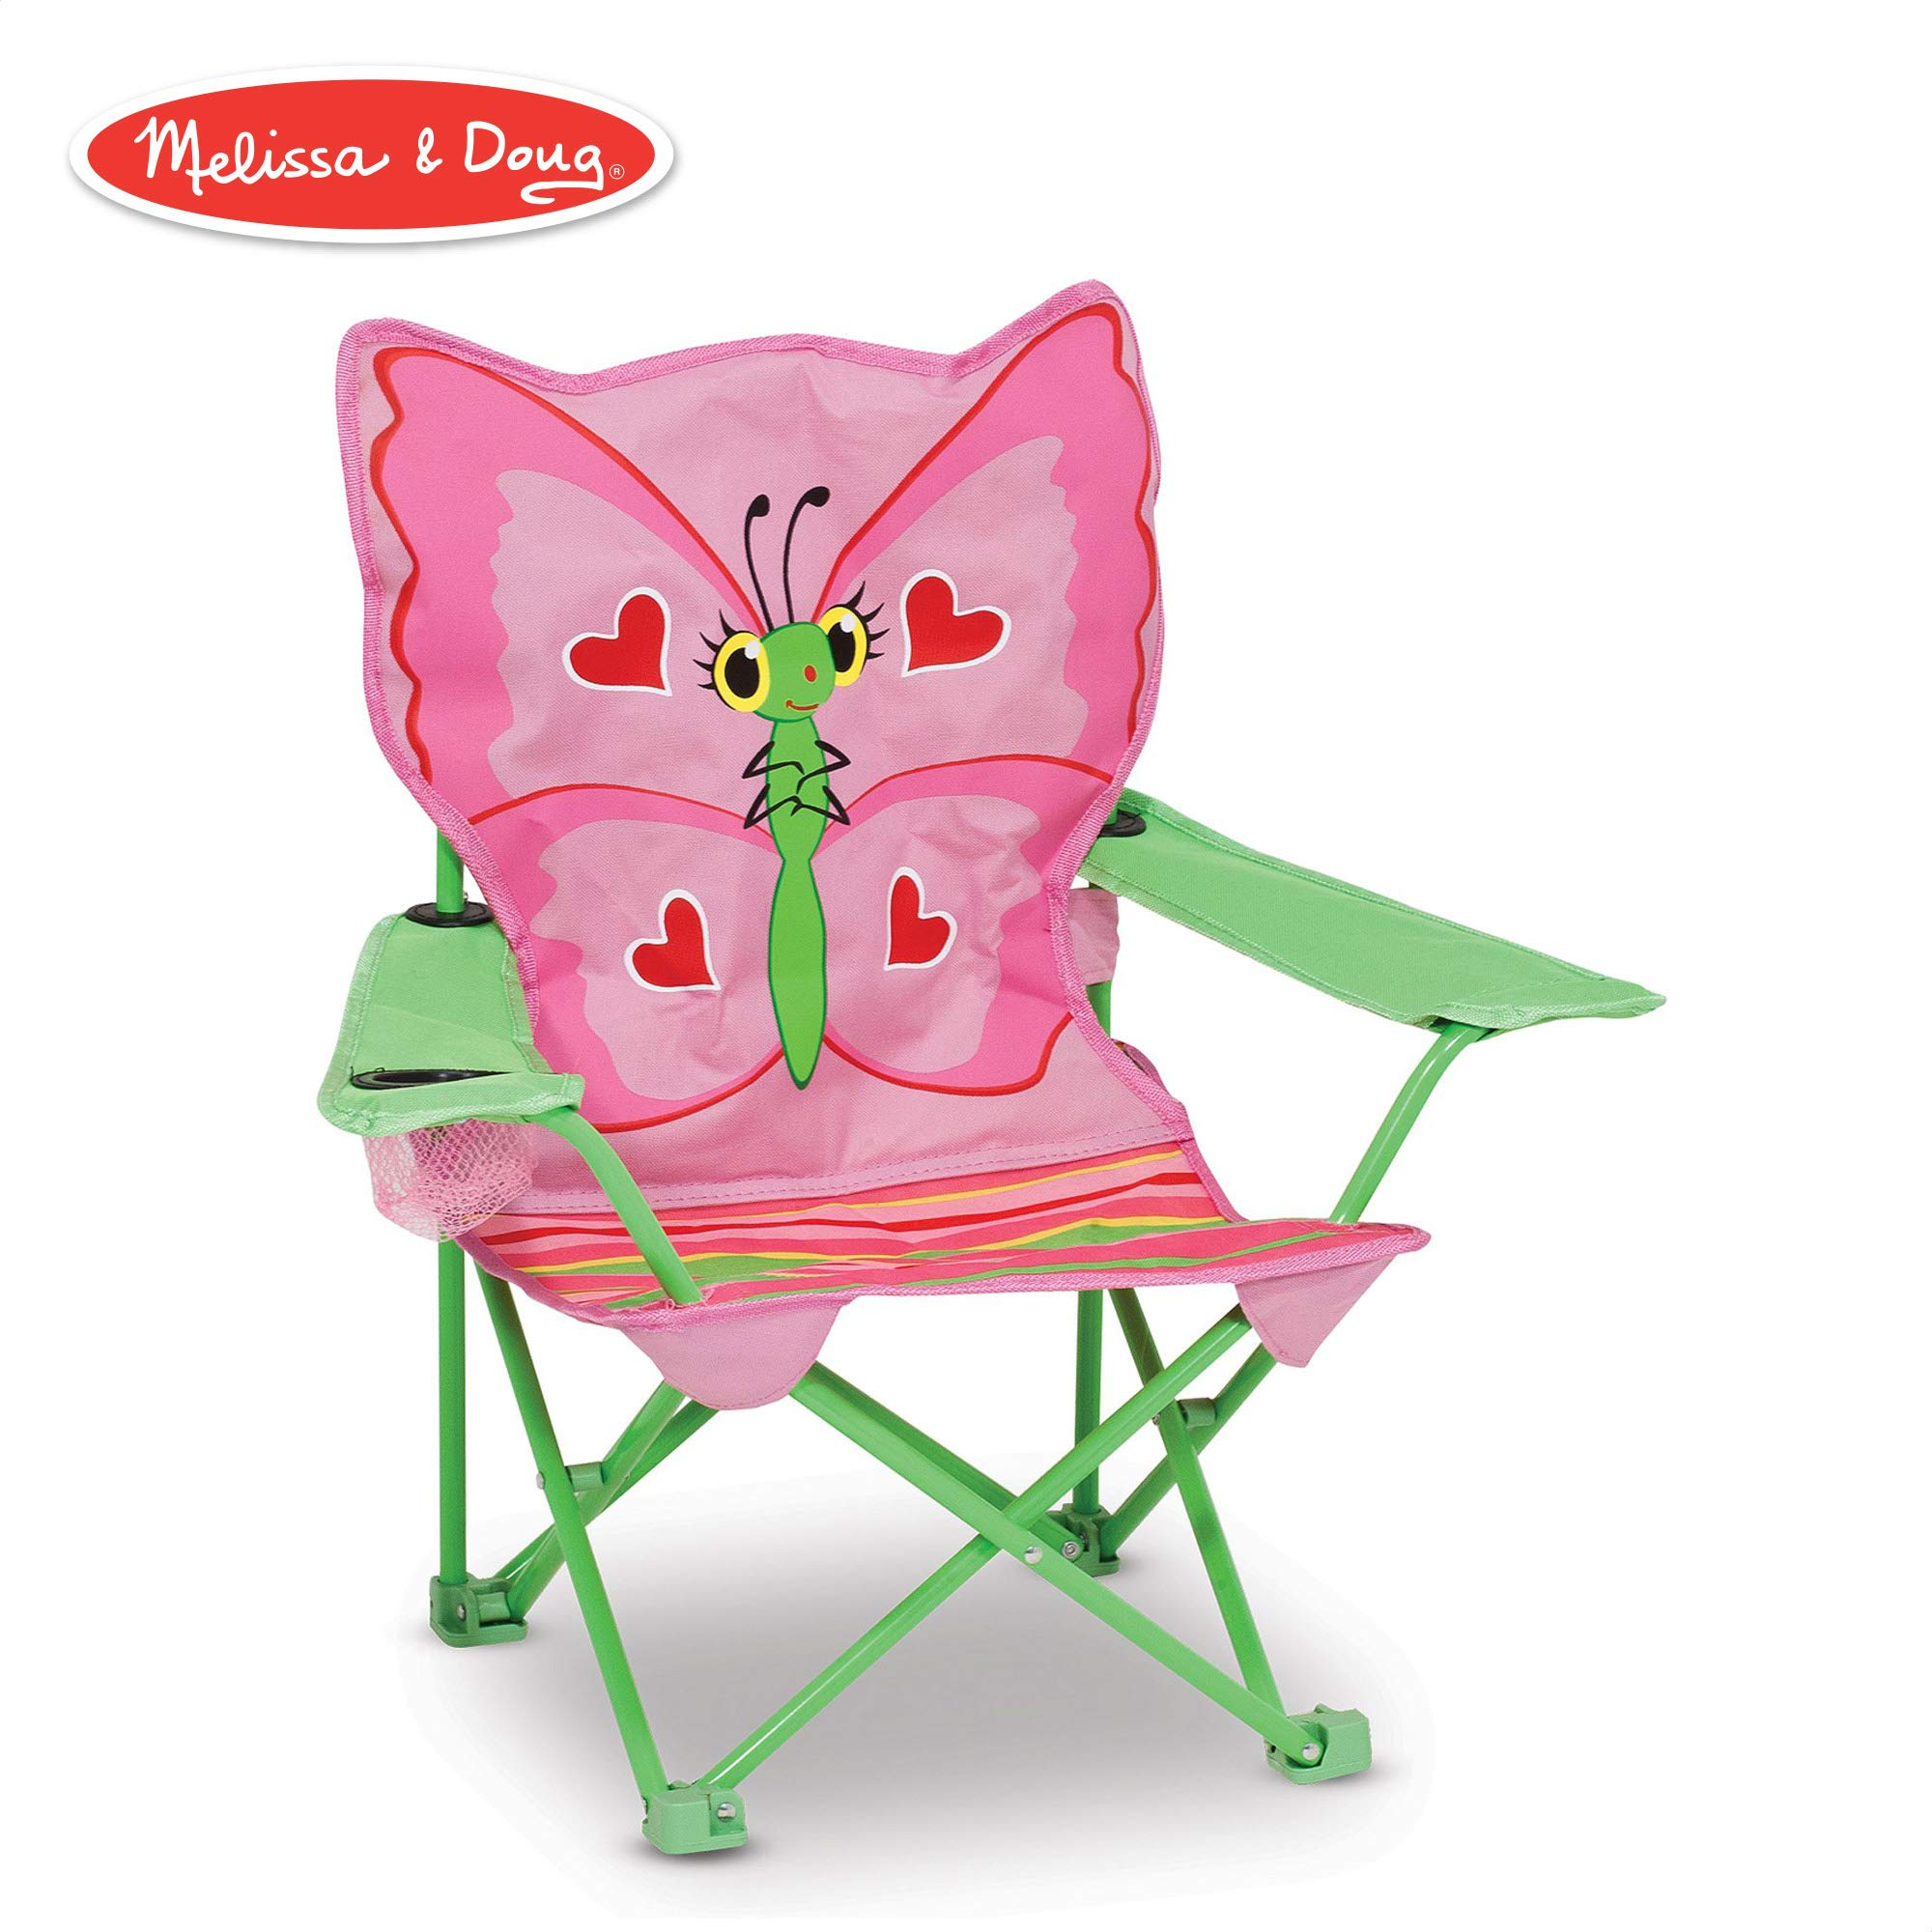 Melissa & Doug Bella Butterfly Child's Outdoor Chair (Easy to Open, Handy Cup Holder, Cleanable Materials, Carrying Bag, 23.7'' H x 6.7'' W x 6.7'' L) by Melissa & Doug